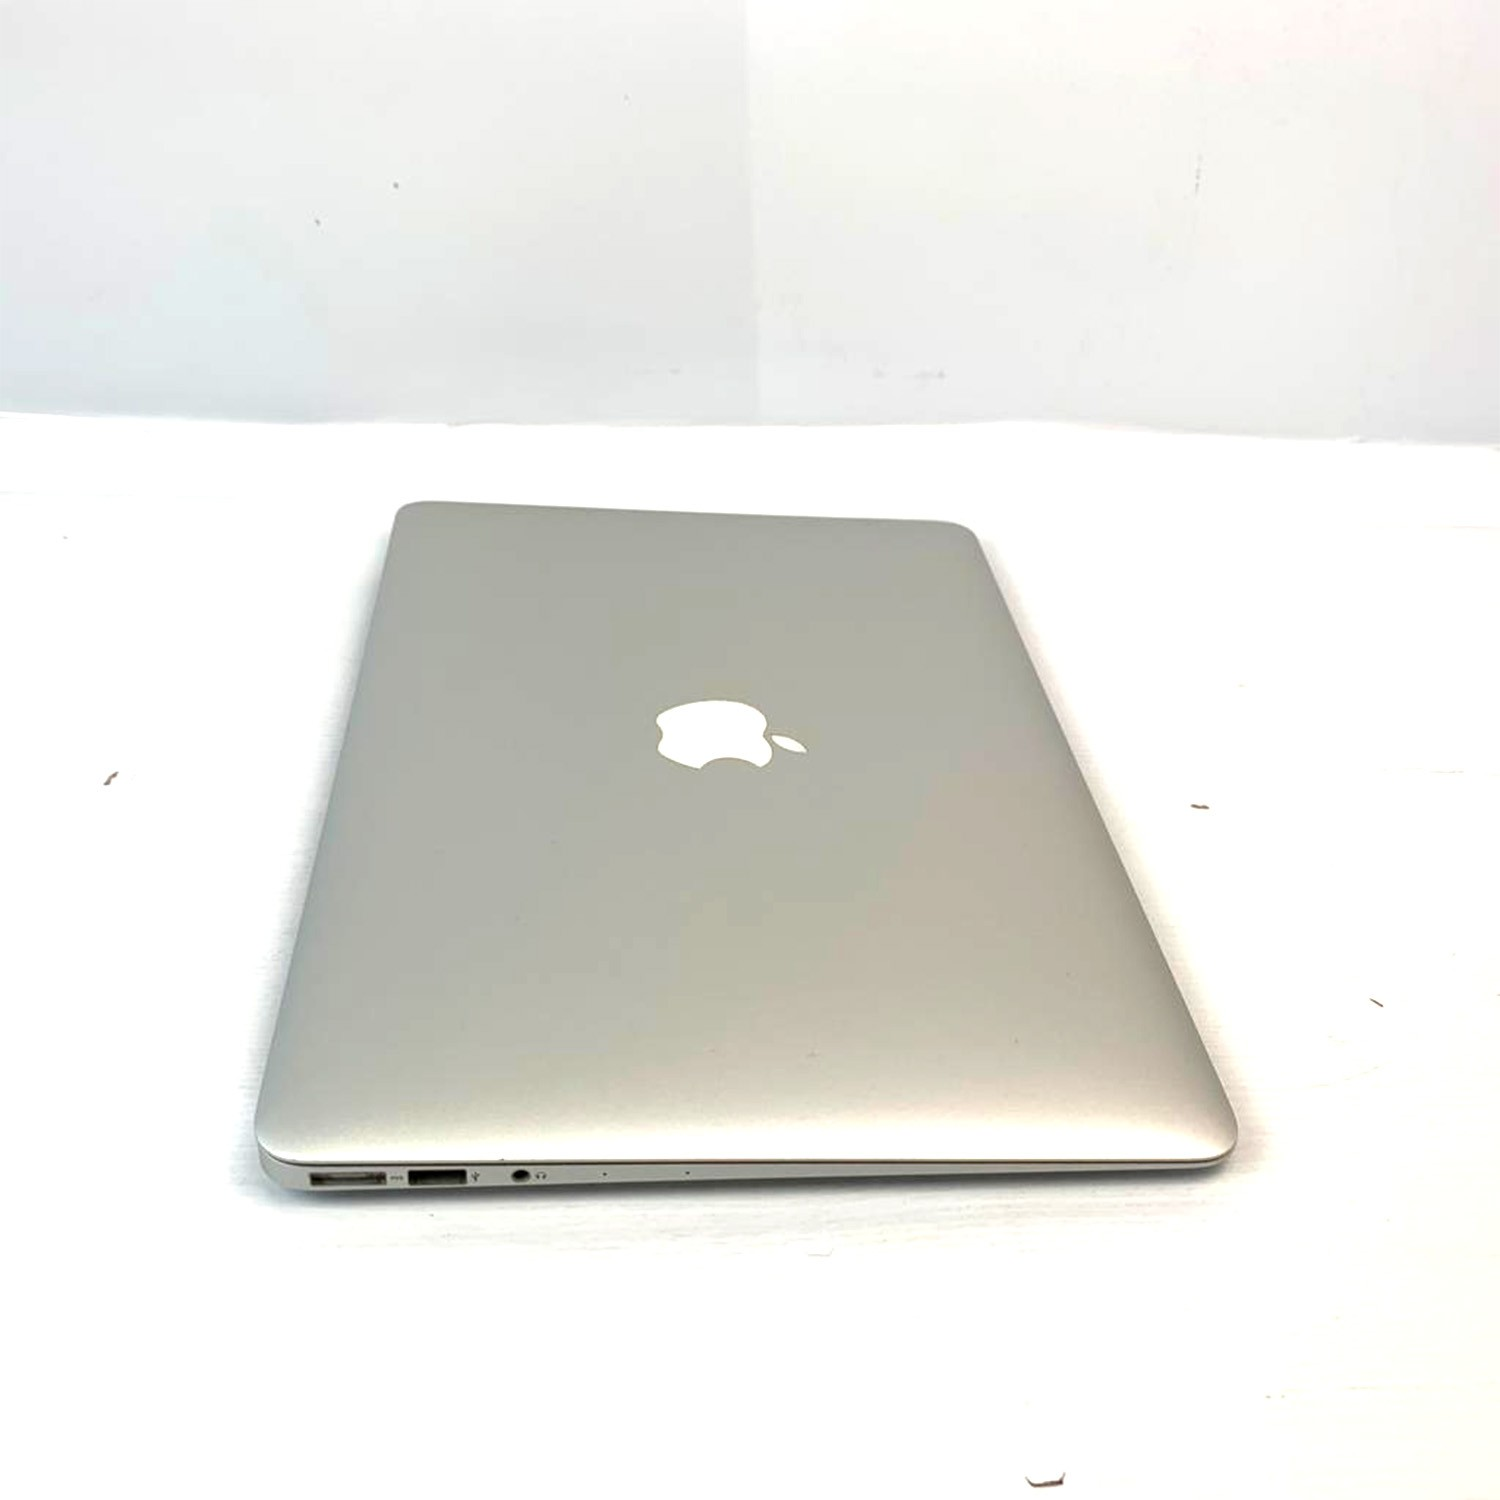 Macbook Air 13 i5 1.8Ghz 8GB 256gb SSD MQD32LL/A Seminovo